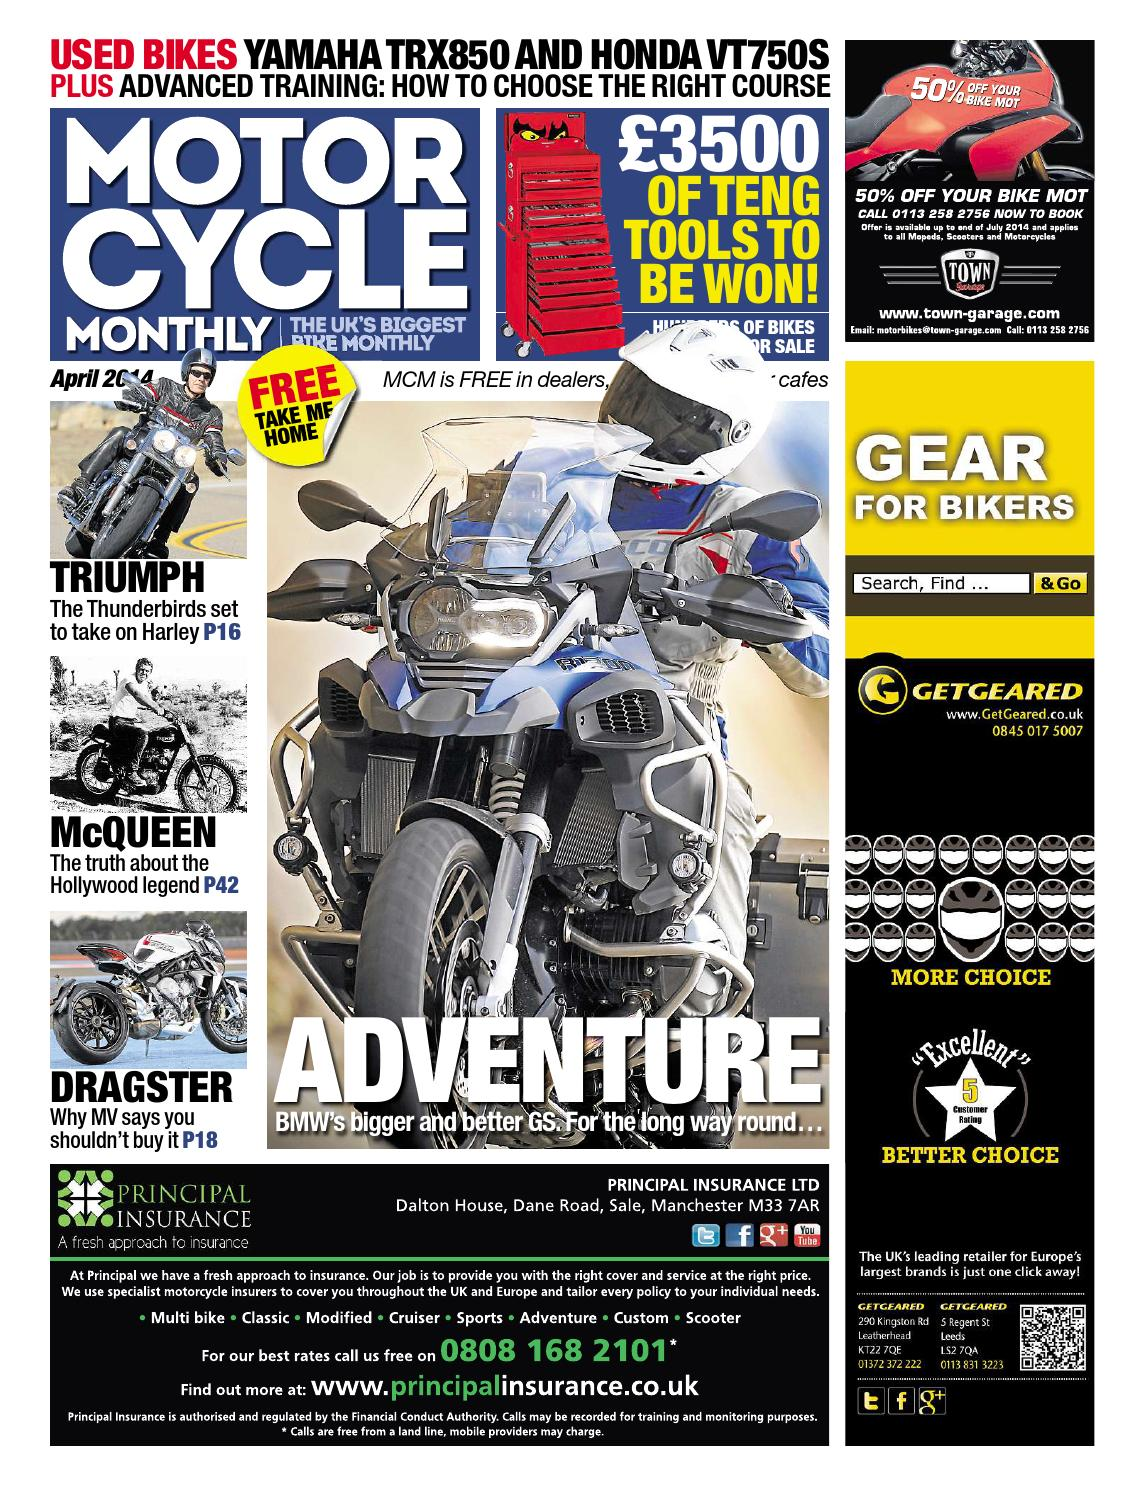 a63e8a5050 Motor Cycle Monthly - April 2014 - Full Edition by Mortons Media Group Ltd  - issuu